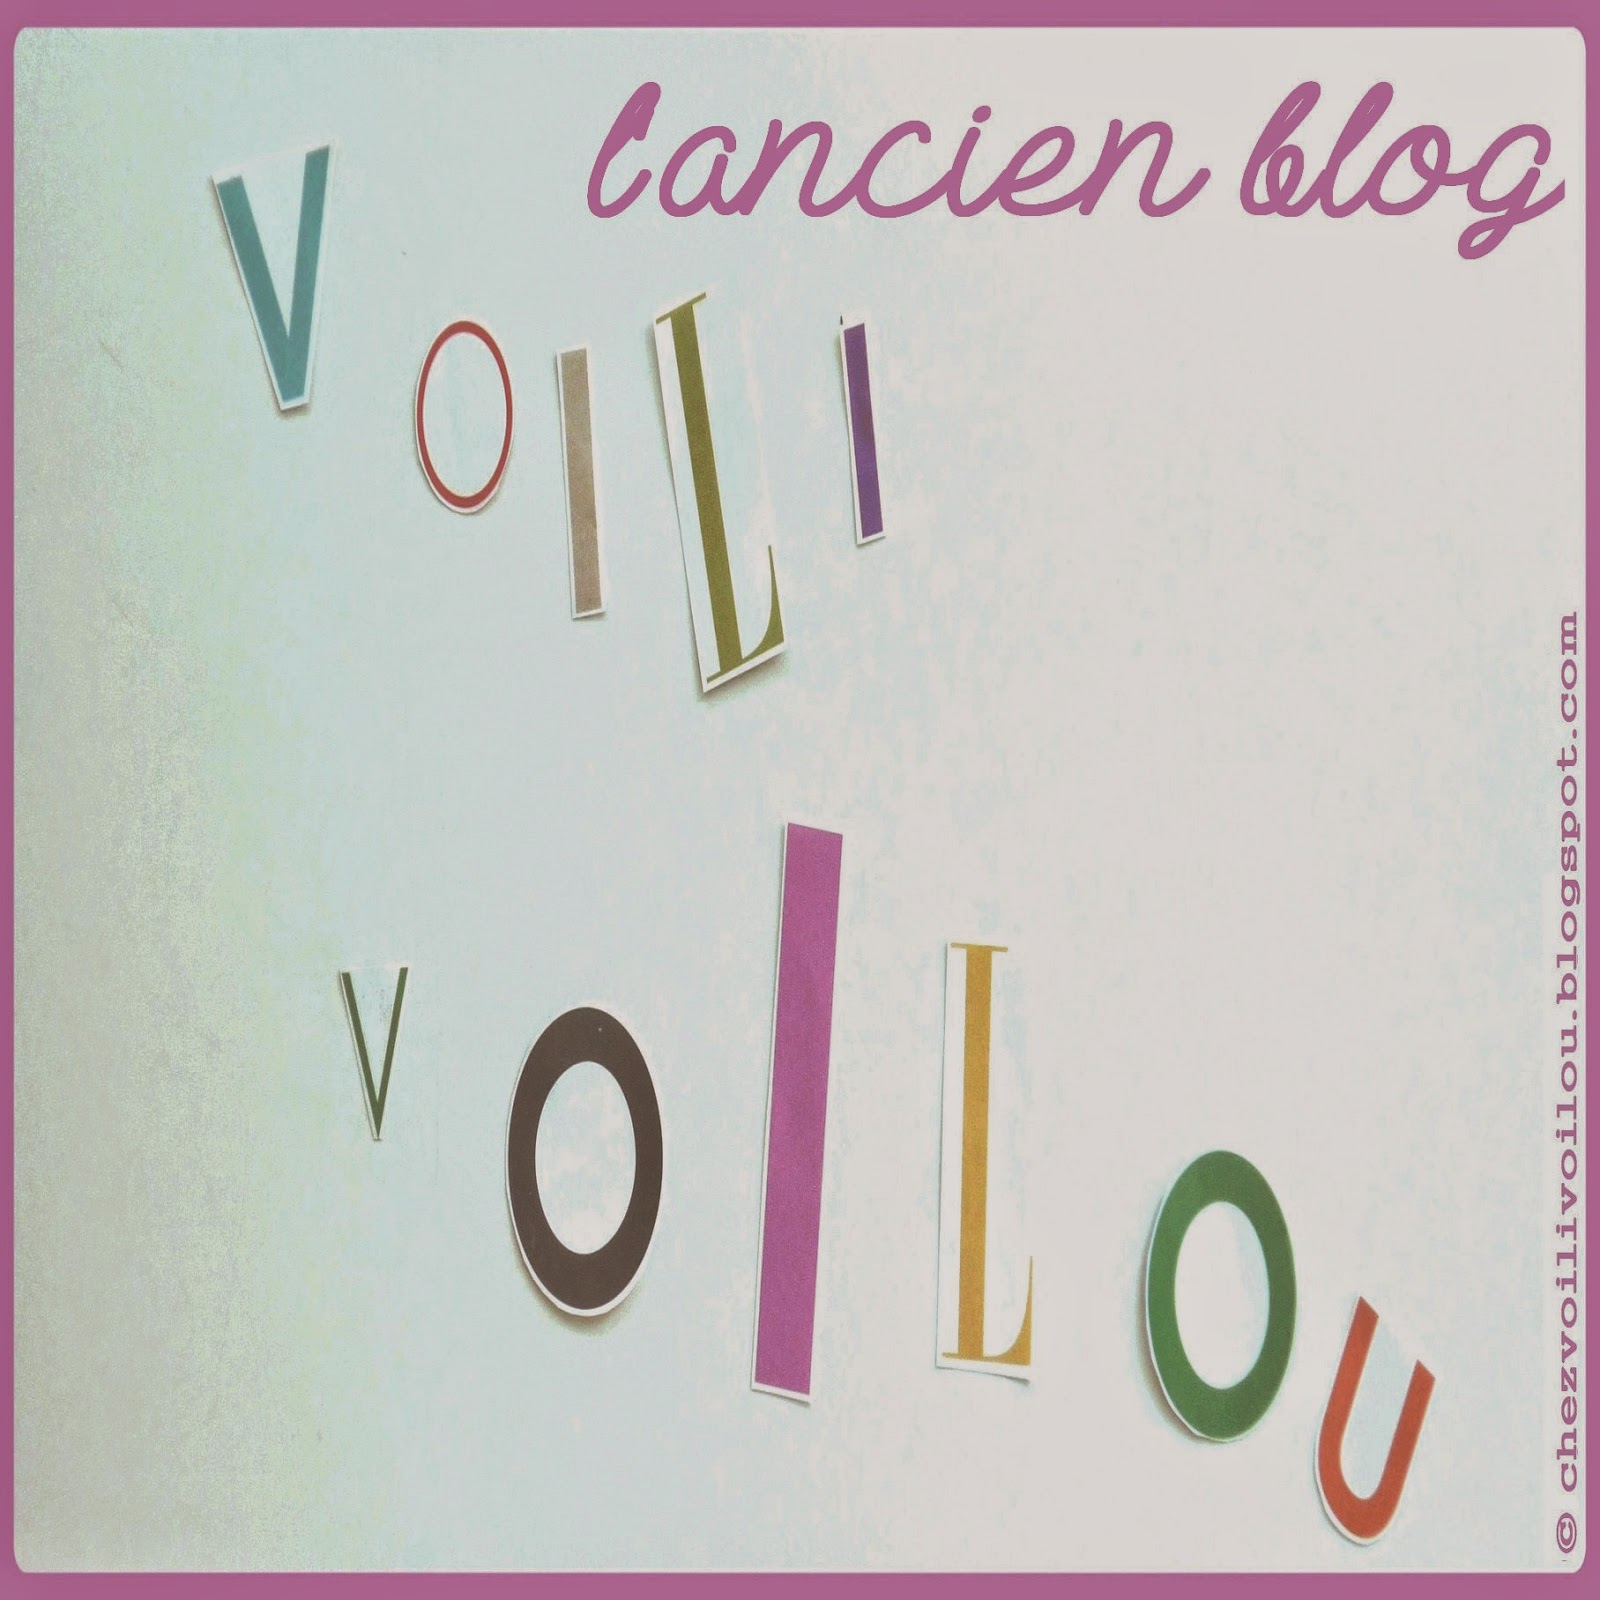 http://voili.voilou.over-blog.fr/